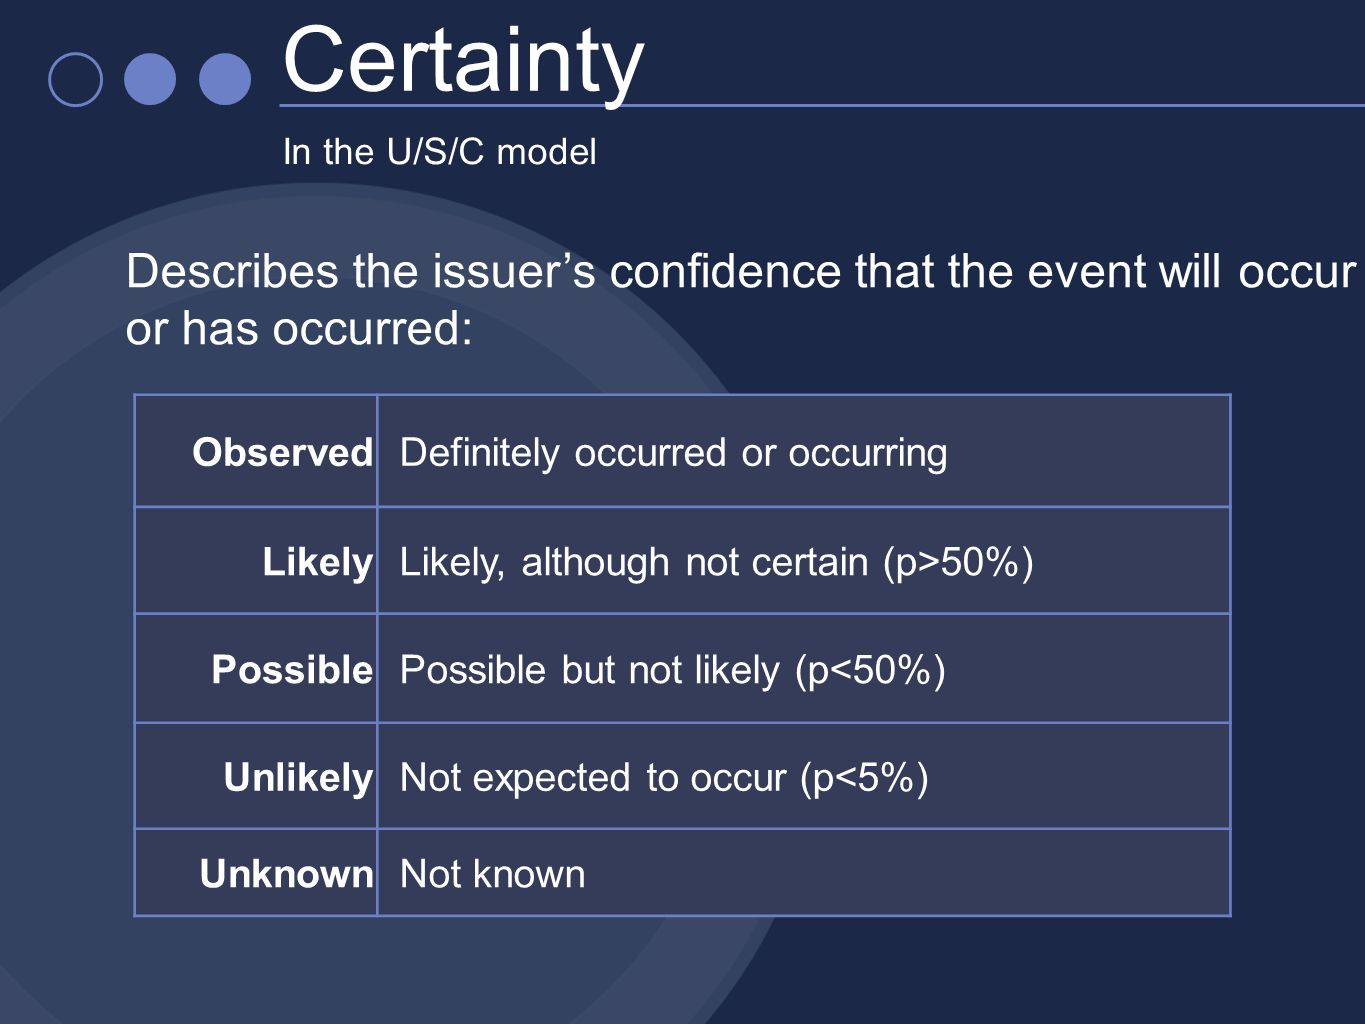 In the U/S/C model Certainty Observed Definitely occurred or occurring Likely Likely, although not certain (p>50%) Possible Possible but not likely (p<50%) Unlikely Not expected to occur (p<5%) Unknown Not known Describes the issuers confidence that the event will occur or has occurred: